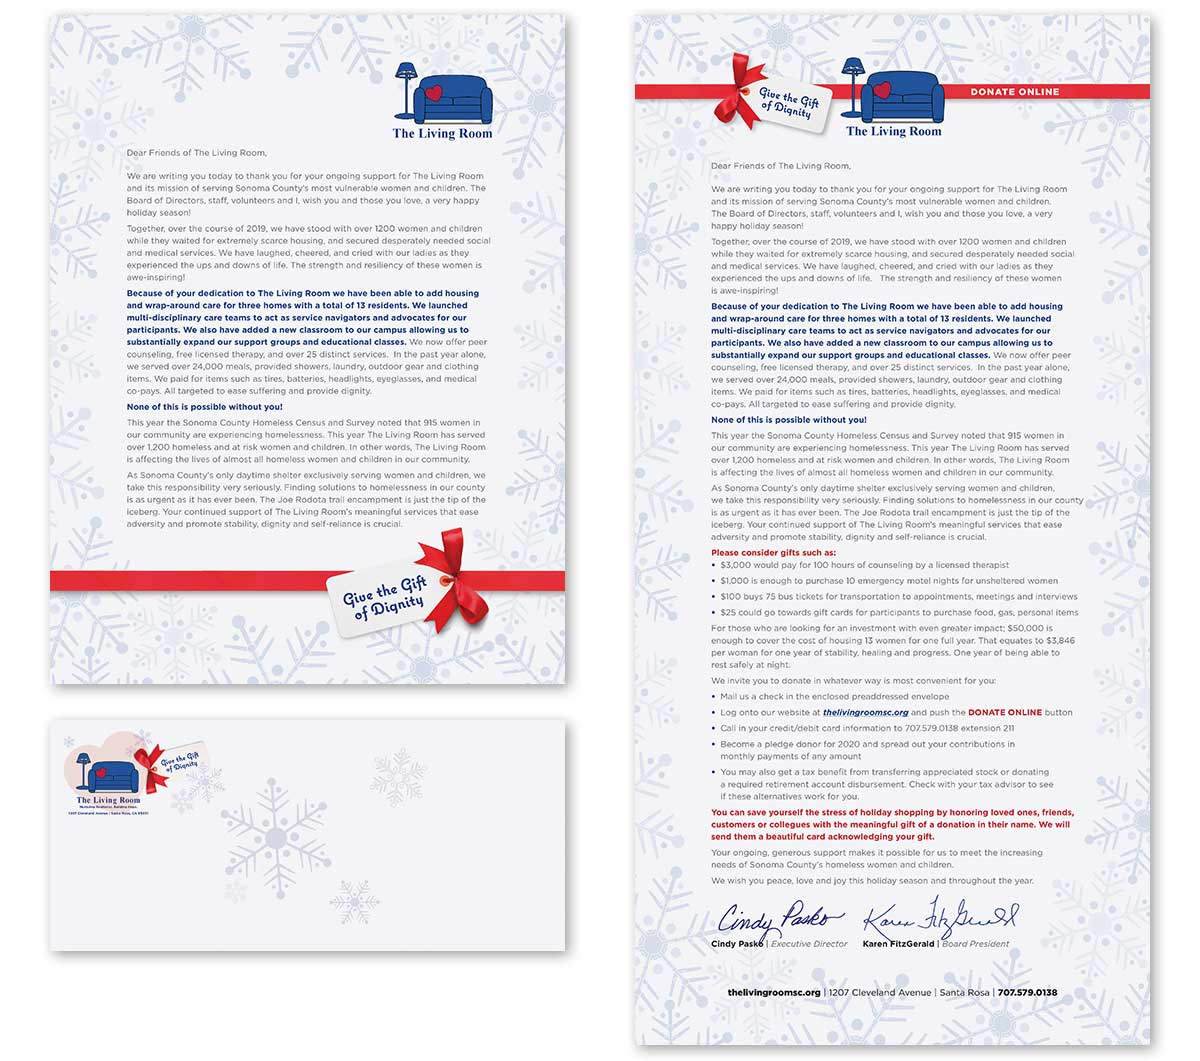 The Living Rooms Holiday Season Gift Appeal Letter and Envelop